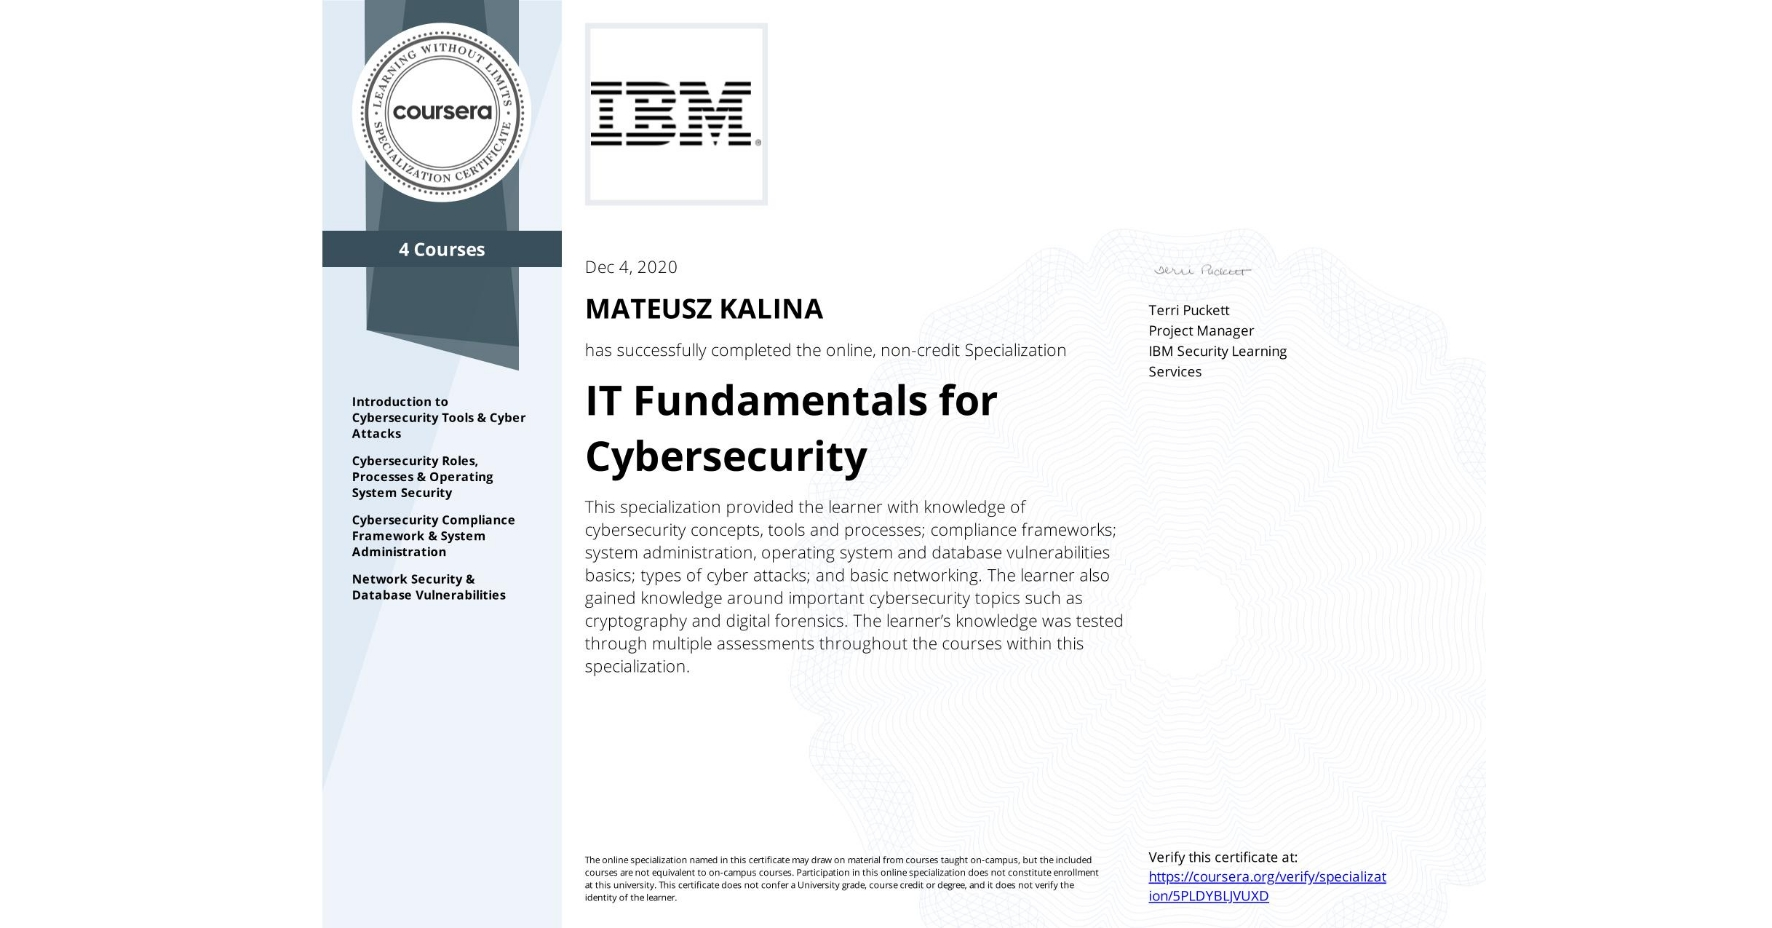 View certificate for MATEUSZ KALINA, IT Fundamentals for Cybersecurity, offered through Coursera. This specialization provided the learner with knowledge of cybersecurity concepts, tools and processes; compliance frameworks; system administration, operating system and database vulnerabilities basics; types of cyber attacks; and basic networking.  The learner also gained knowledge around important cybersecurity topics such as cryptography and digital forensics.  The learner's knowledge was tested through multiple assessments throughout the courses within this specialization.